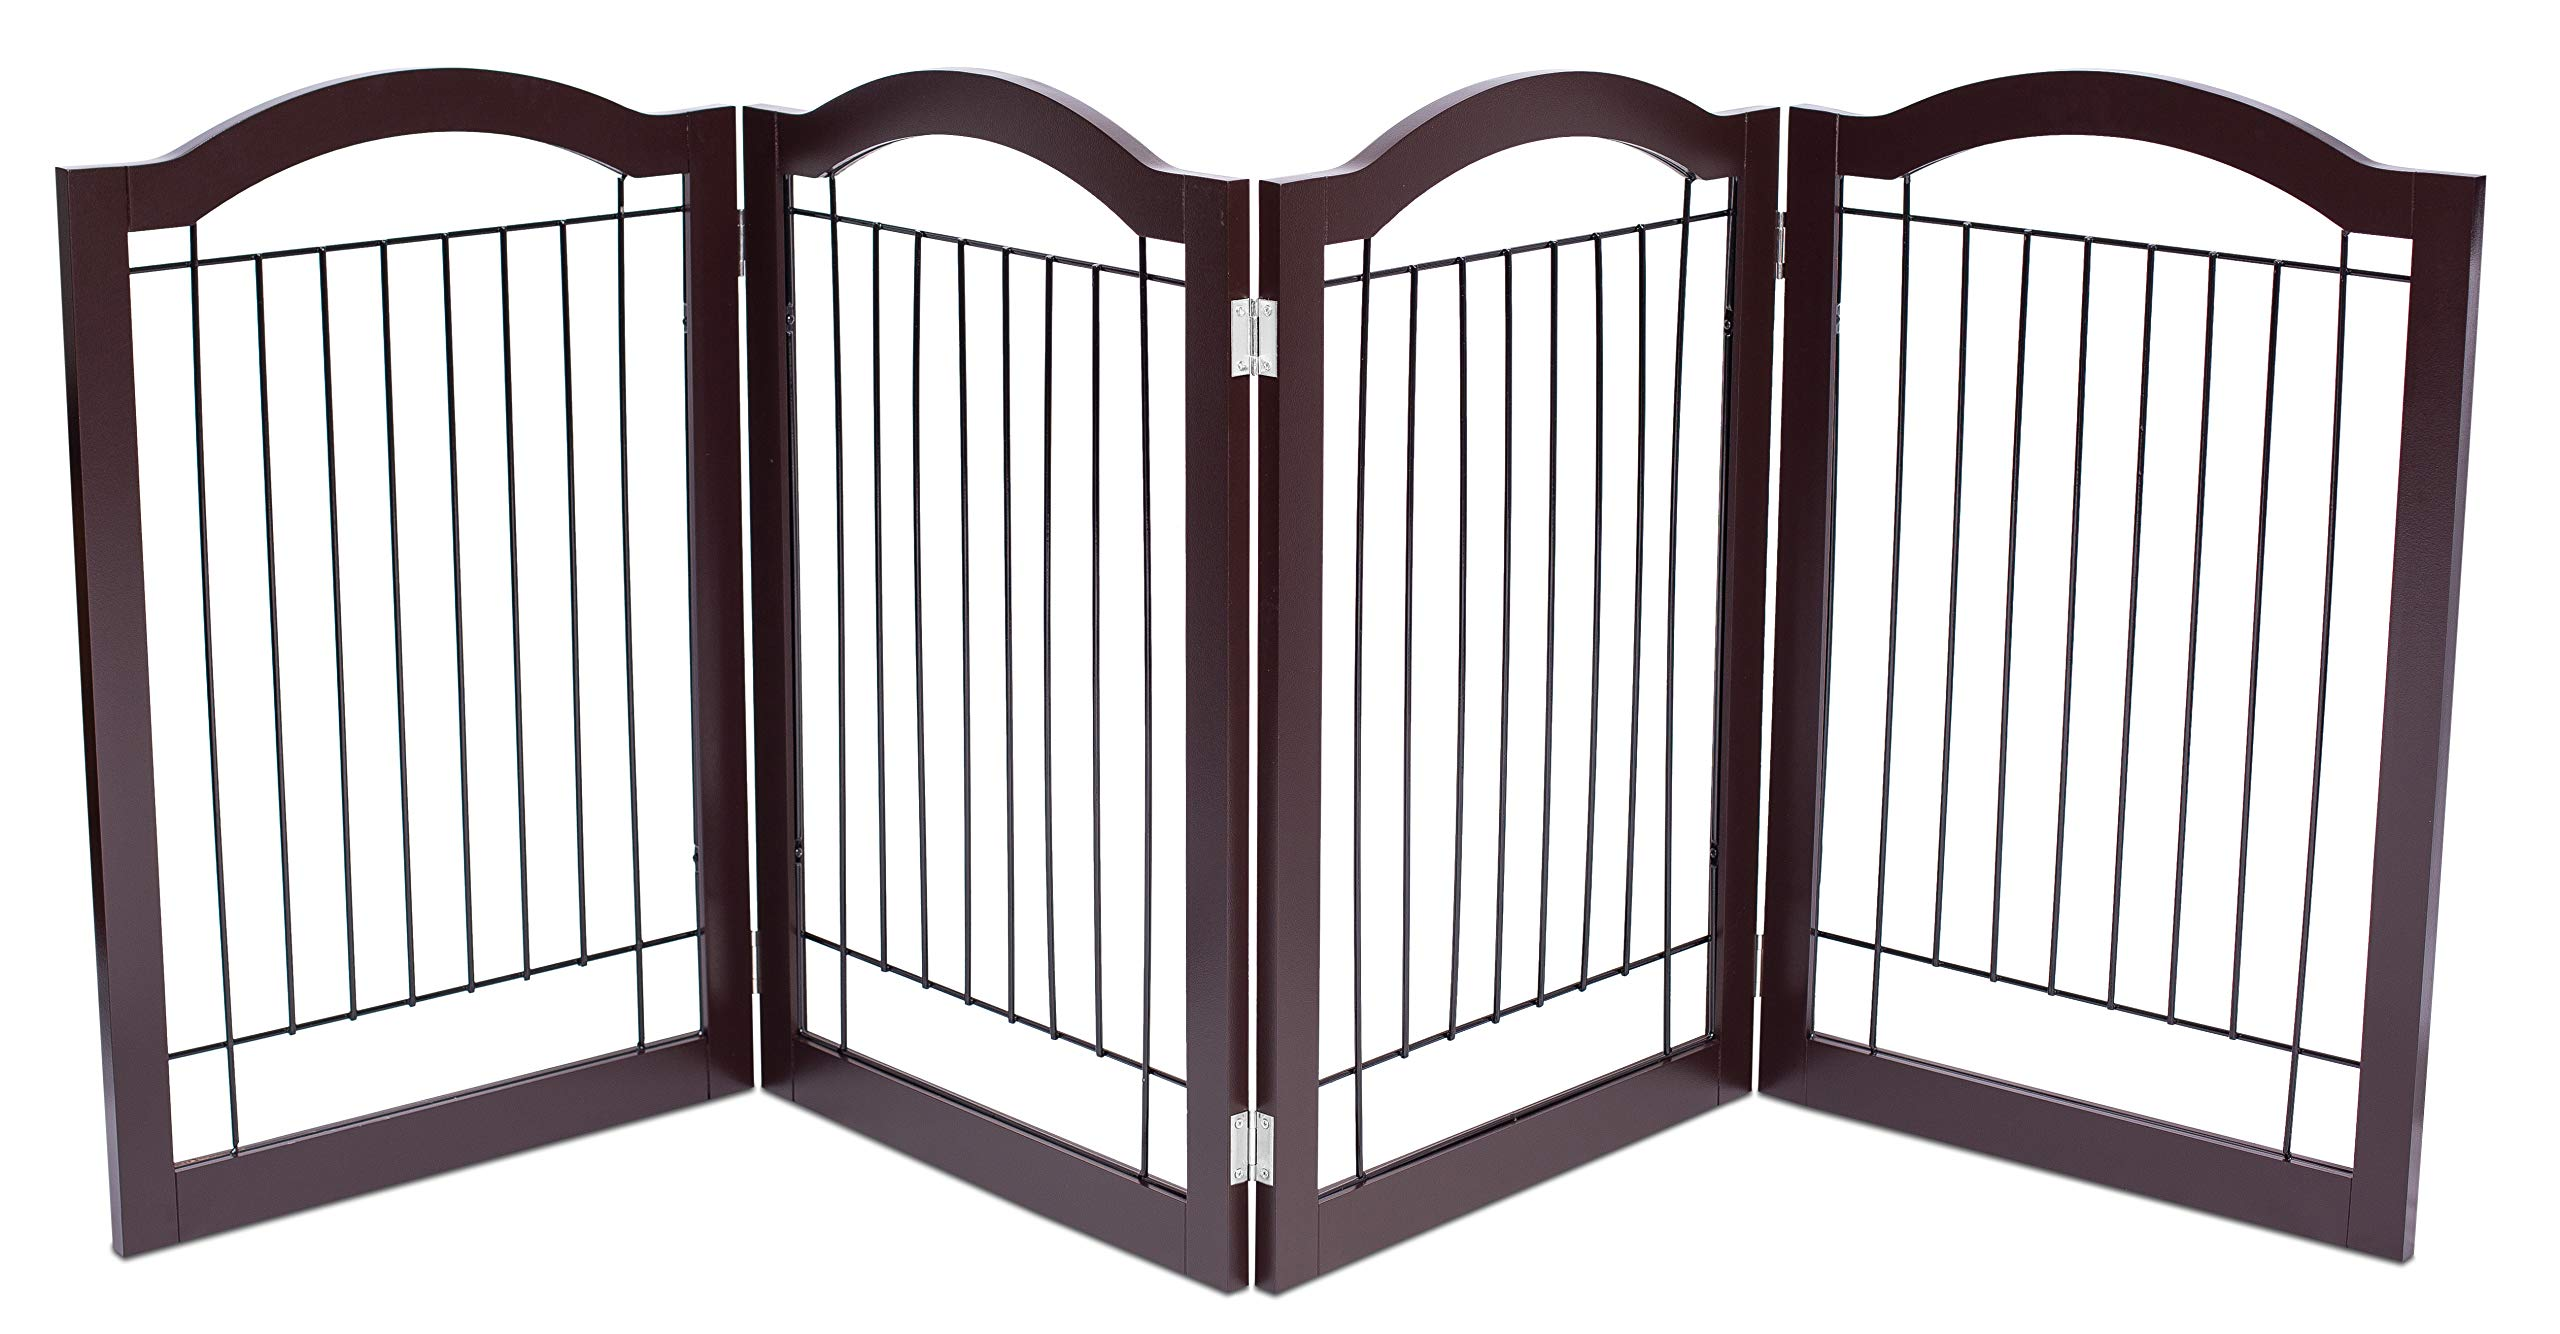 Internet's Best Wire Dog Gate with Arched Top - 4 Panel - 30 Inch Tall Pet Puppy Safety Fence - Fully Assembled - Durable Wooden - Folding Z Shape Indoor Doorway Hall Stairs Free Standing - Espresso by Internet's Best